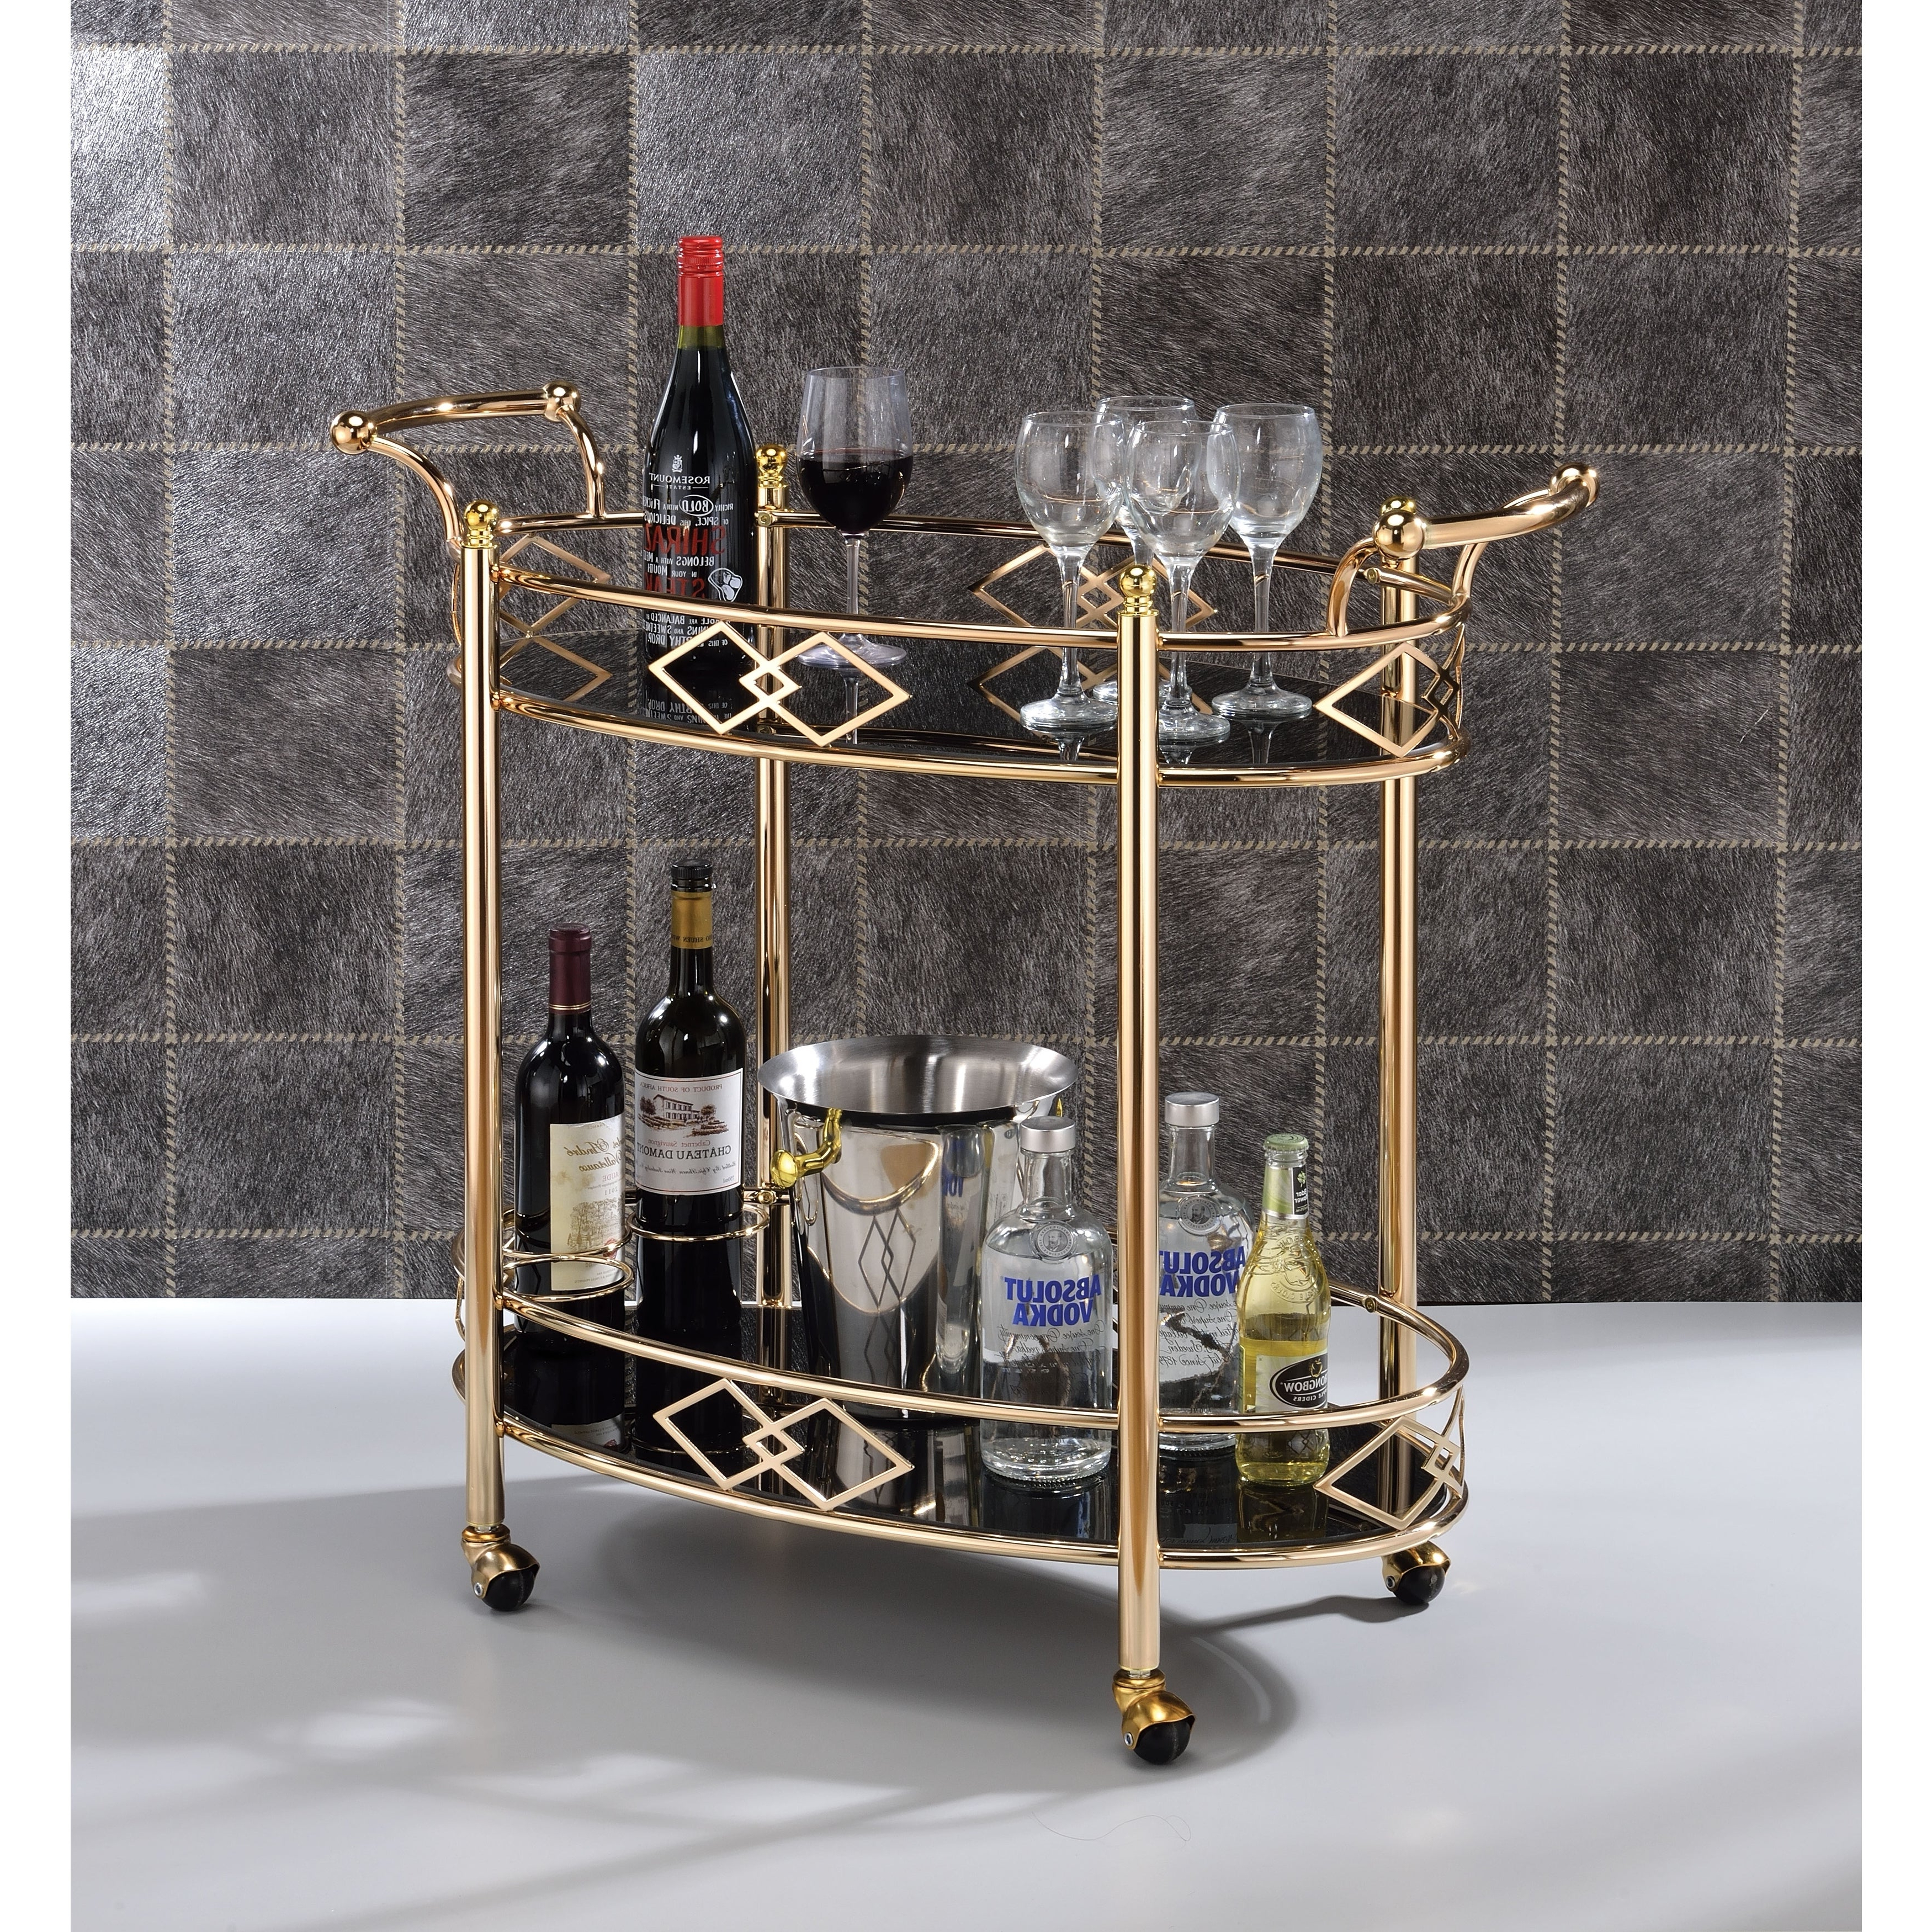 Two Tier Metal Framed Serving Cart With Designer Side Rails And Glass  Shelves, Gold And Black Intended For Contemporary Three Tier Glass Buffets With Black Metal Frame (View 19 of 20)